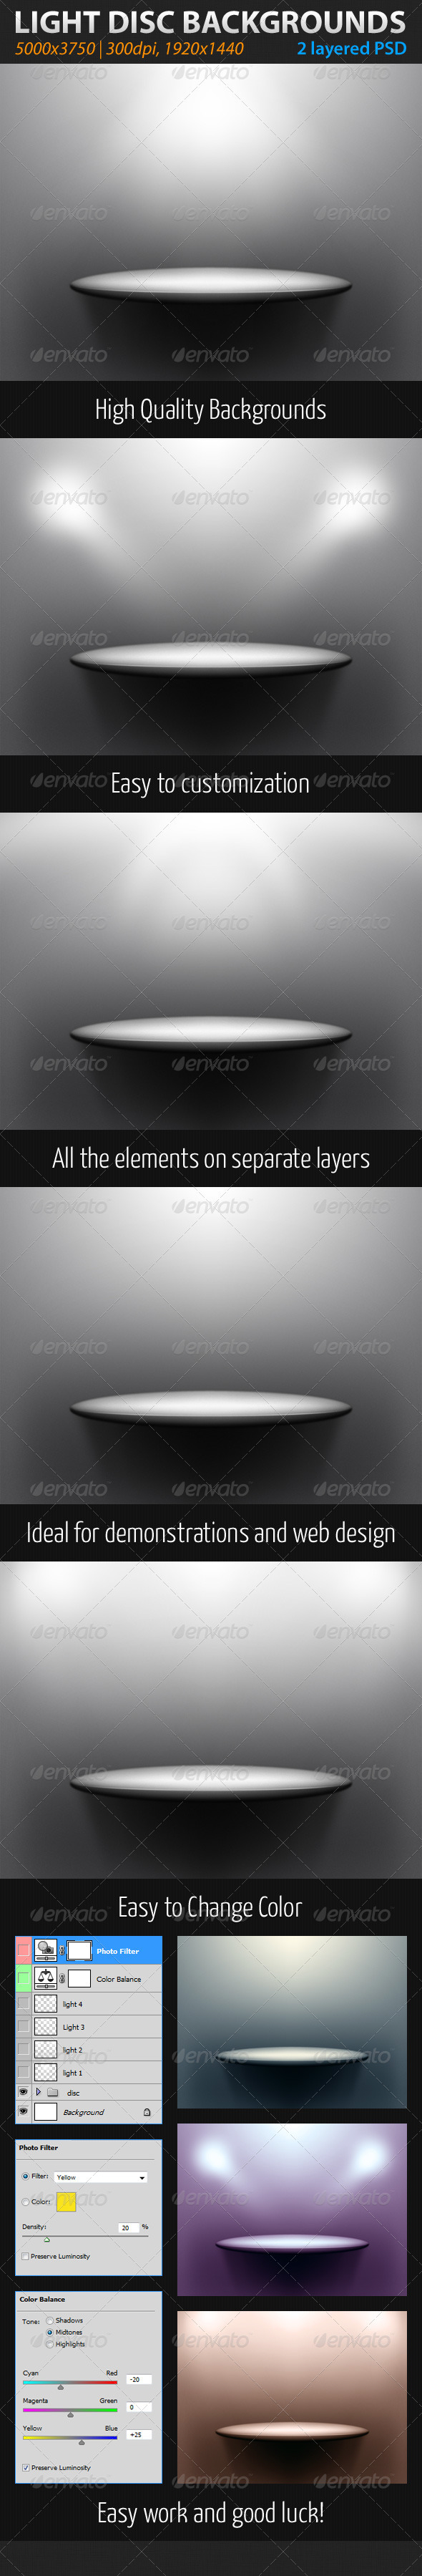 GraphicRiver Light Disc Backgrounds 1984470